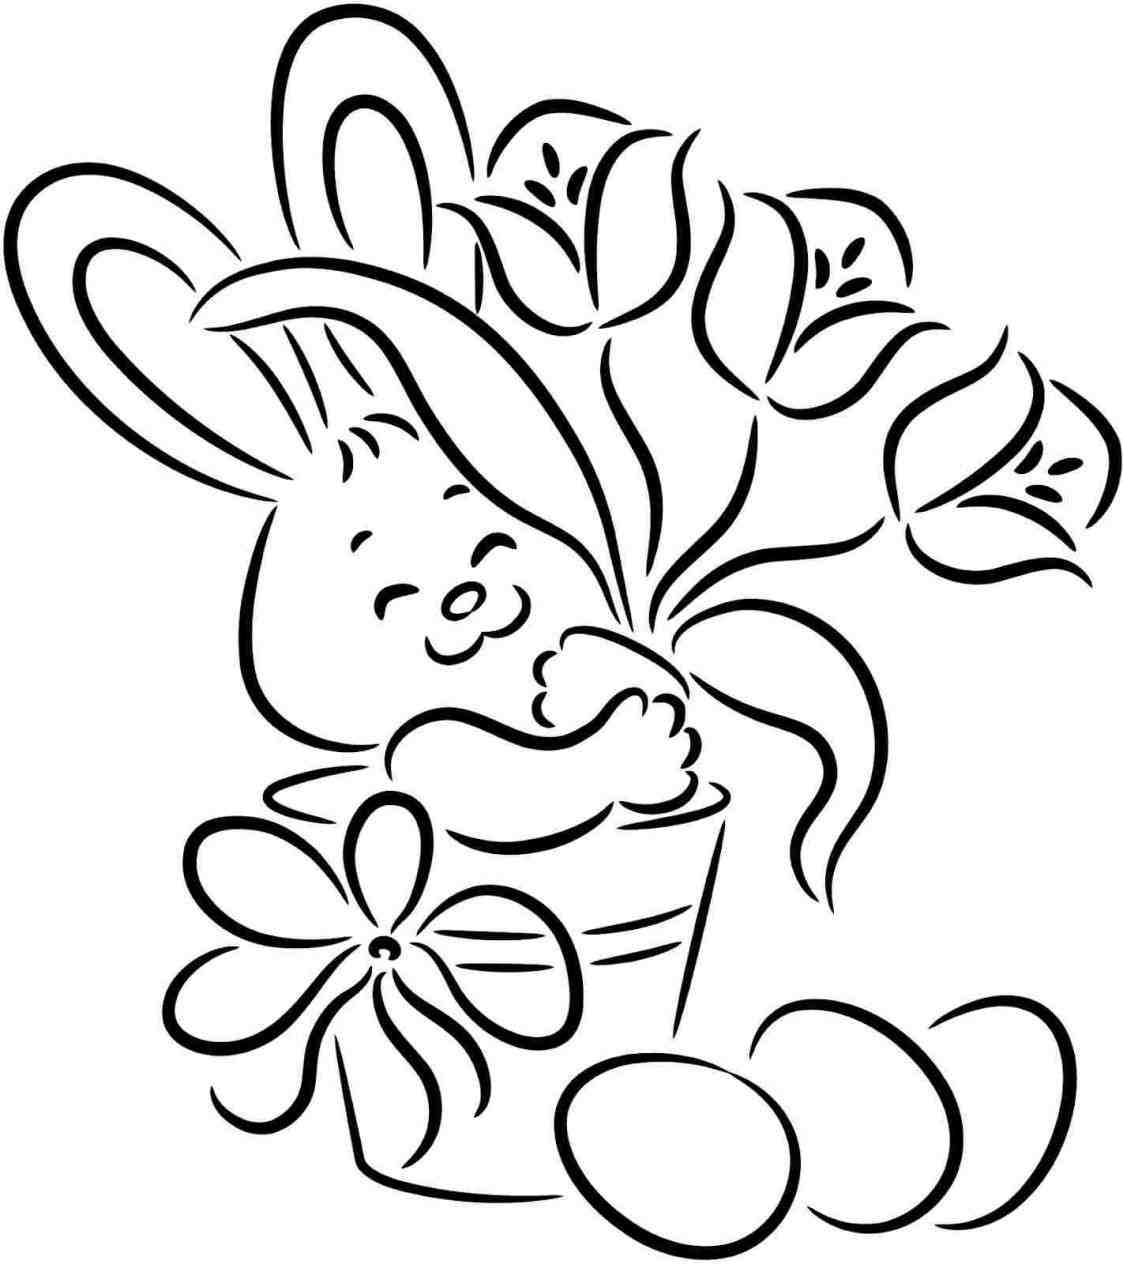 1123x1264 coloring pages images on pinterest awesome stuff drawing cover